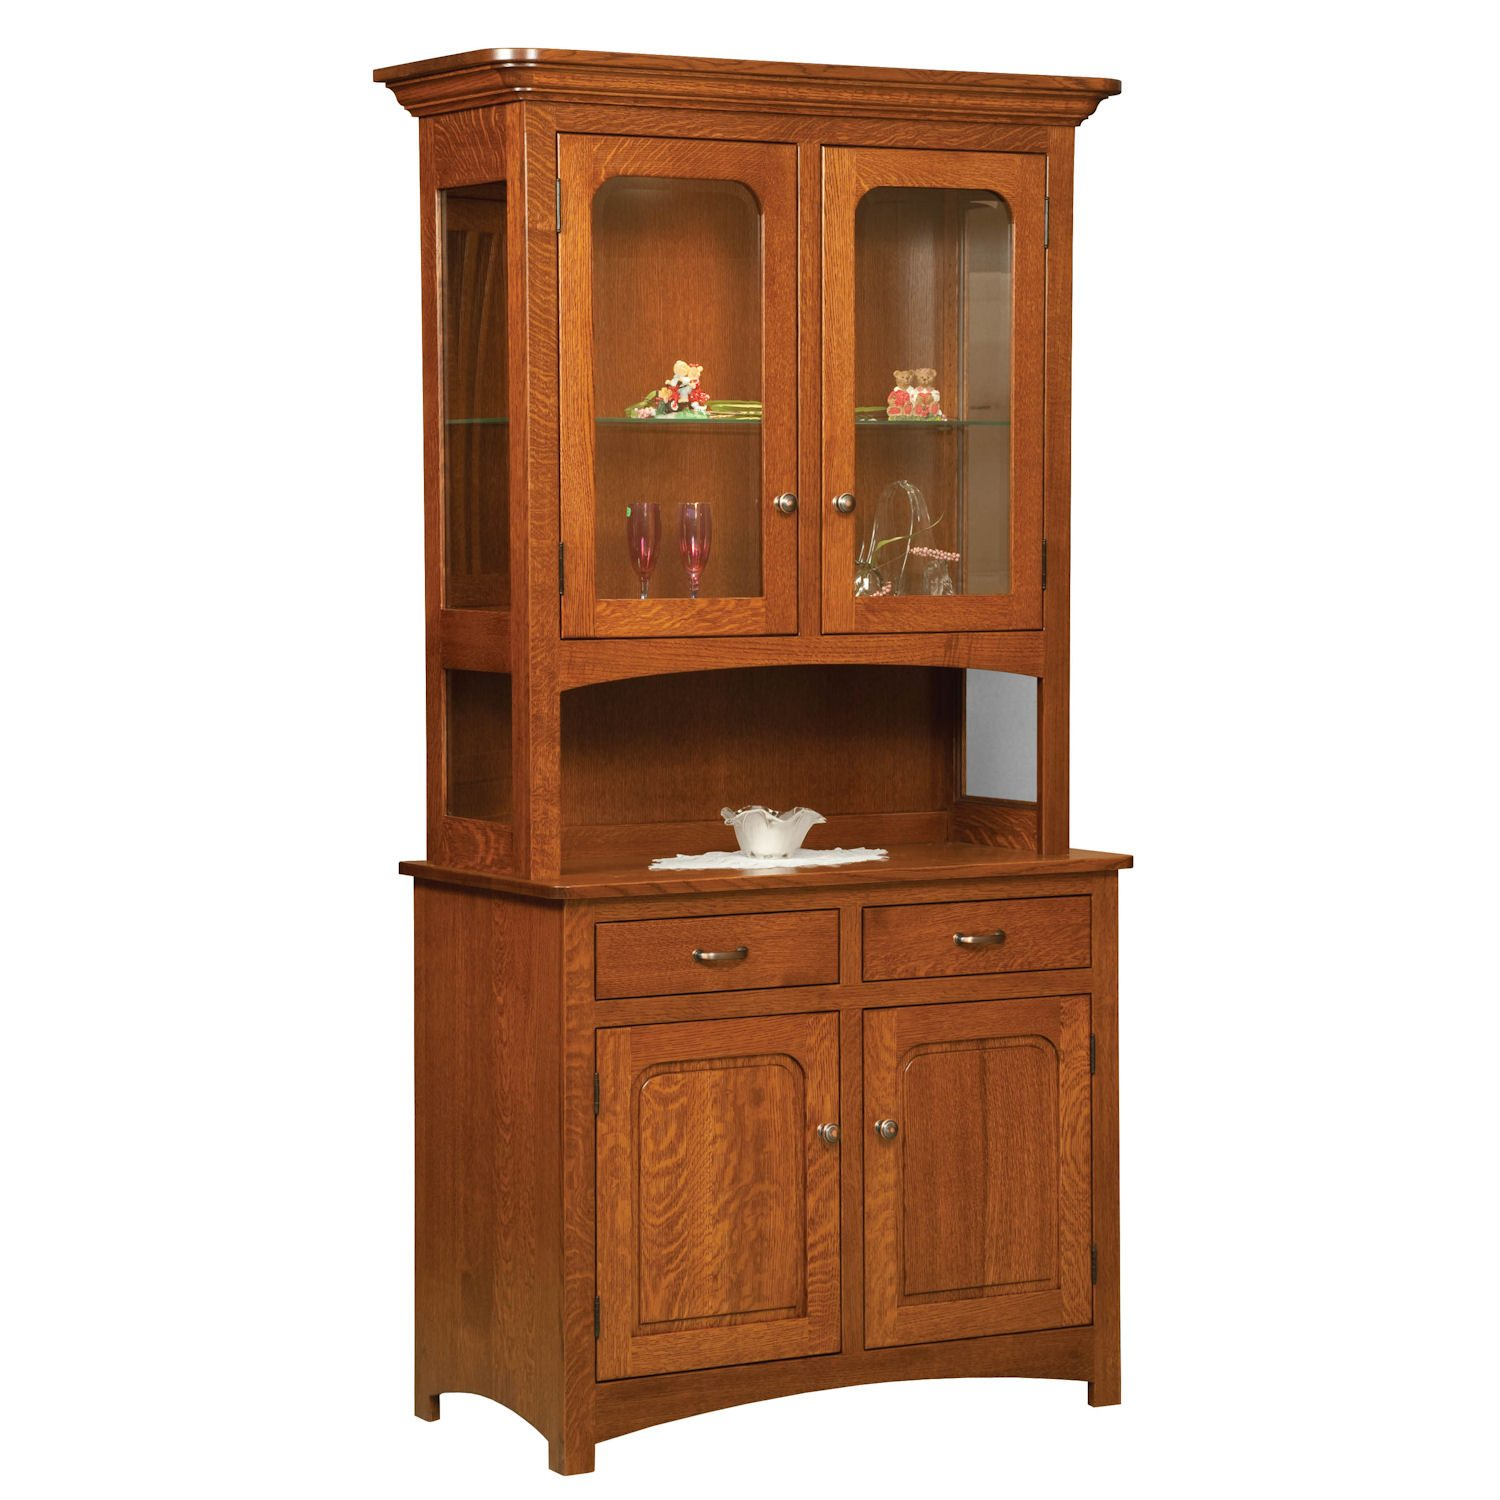 Savanah Wood Dining Room Hutch